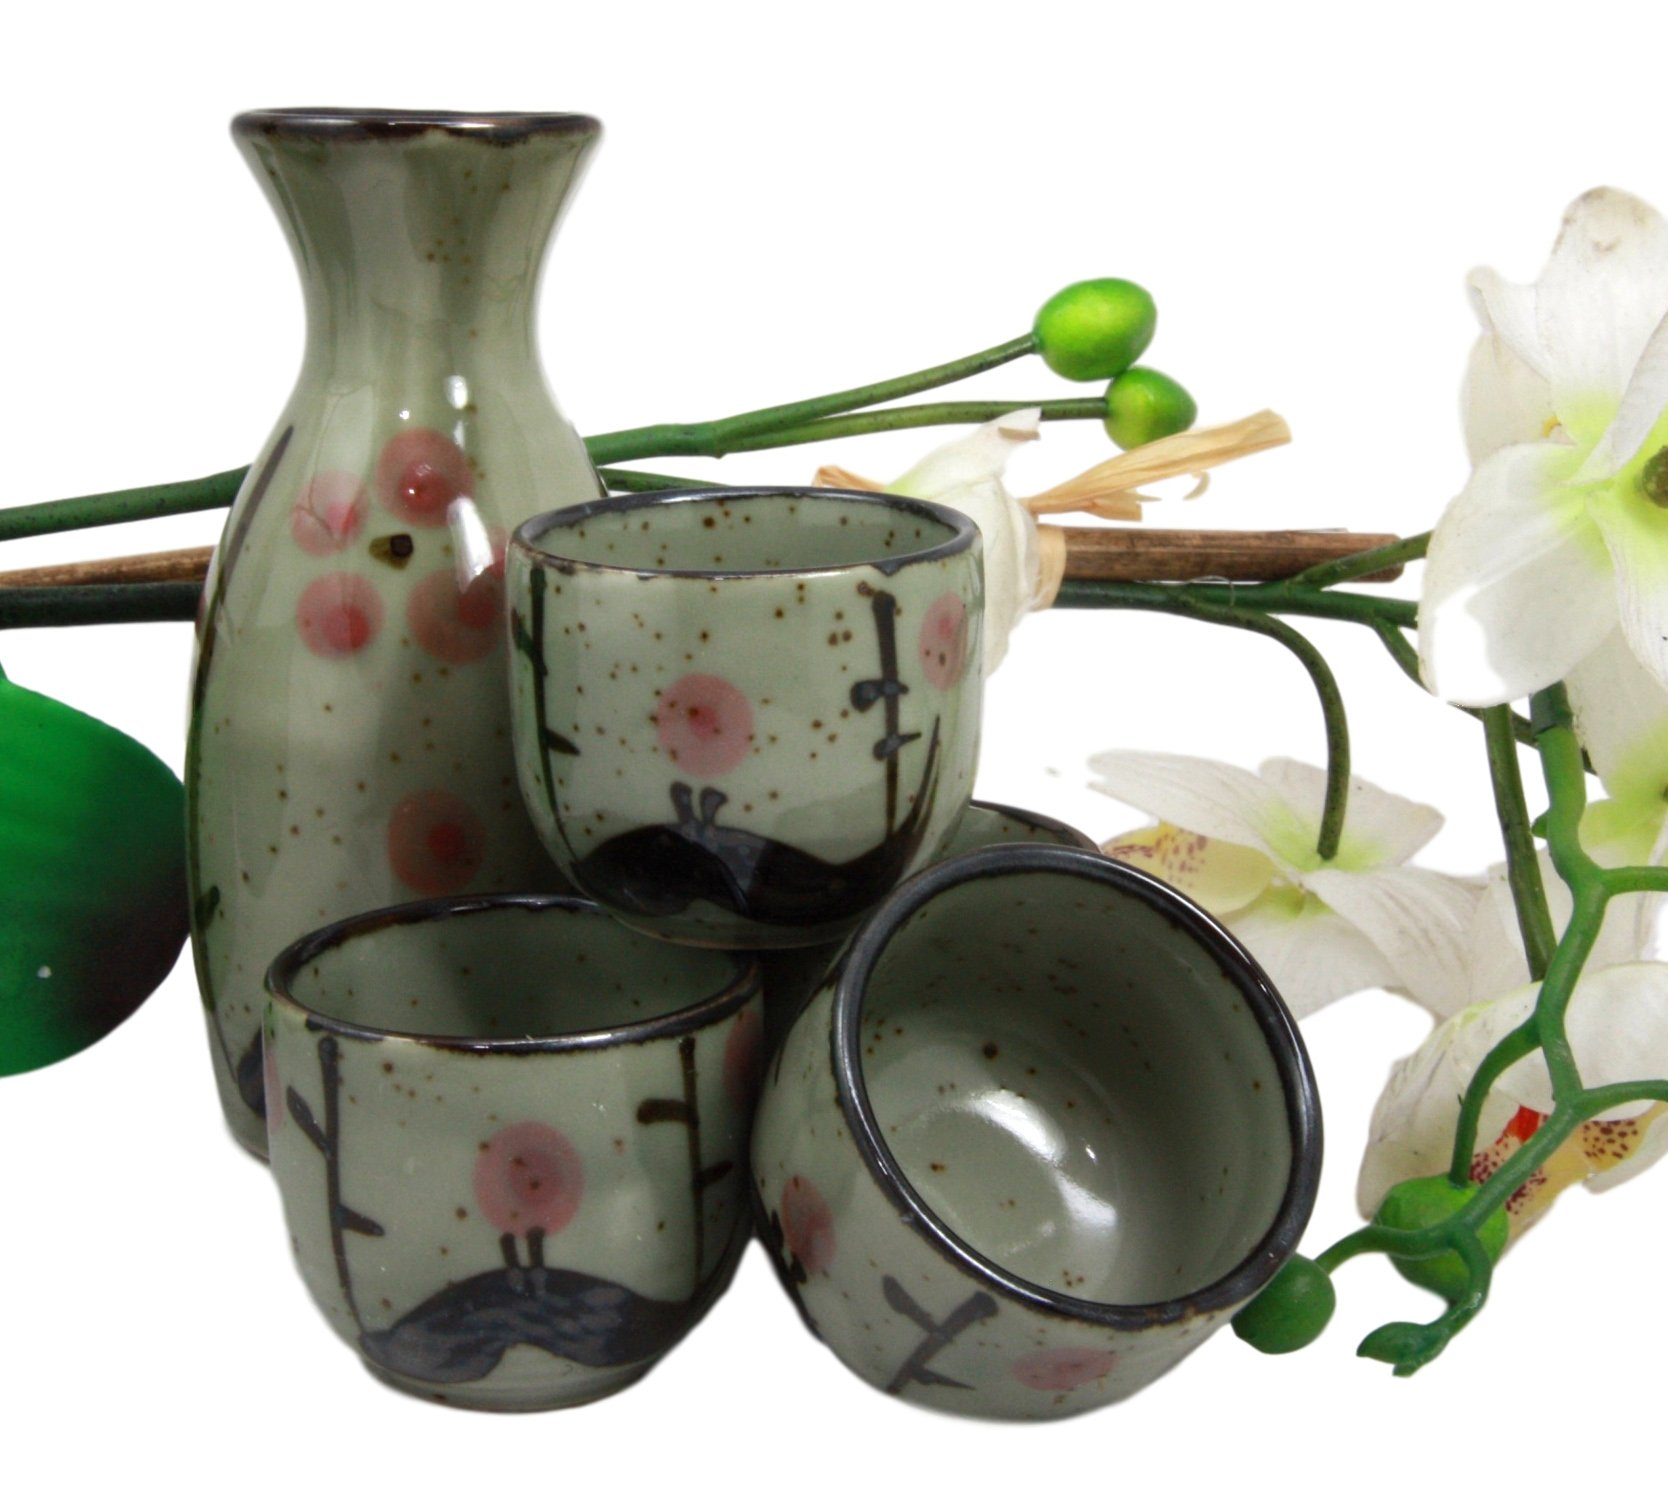 Atlantic Collectibles Japanese 5oz Ceramic Matcha Cherry Blossom Sake Set Flask With Four Cups Made In Japan